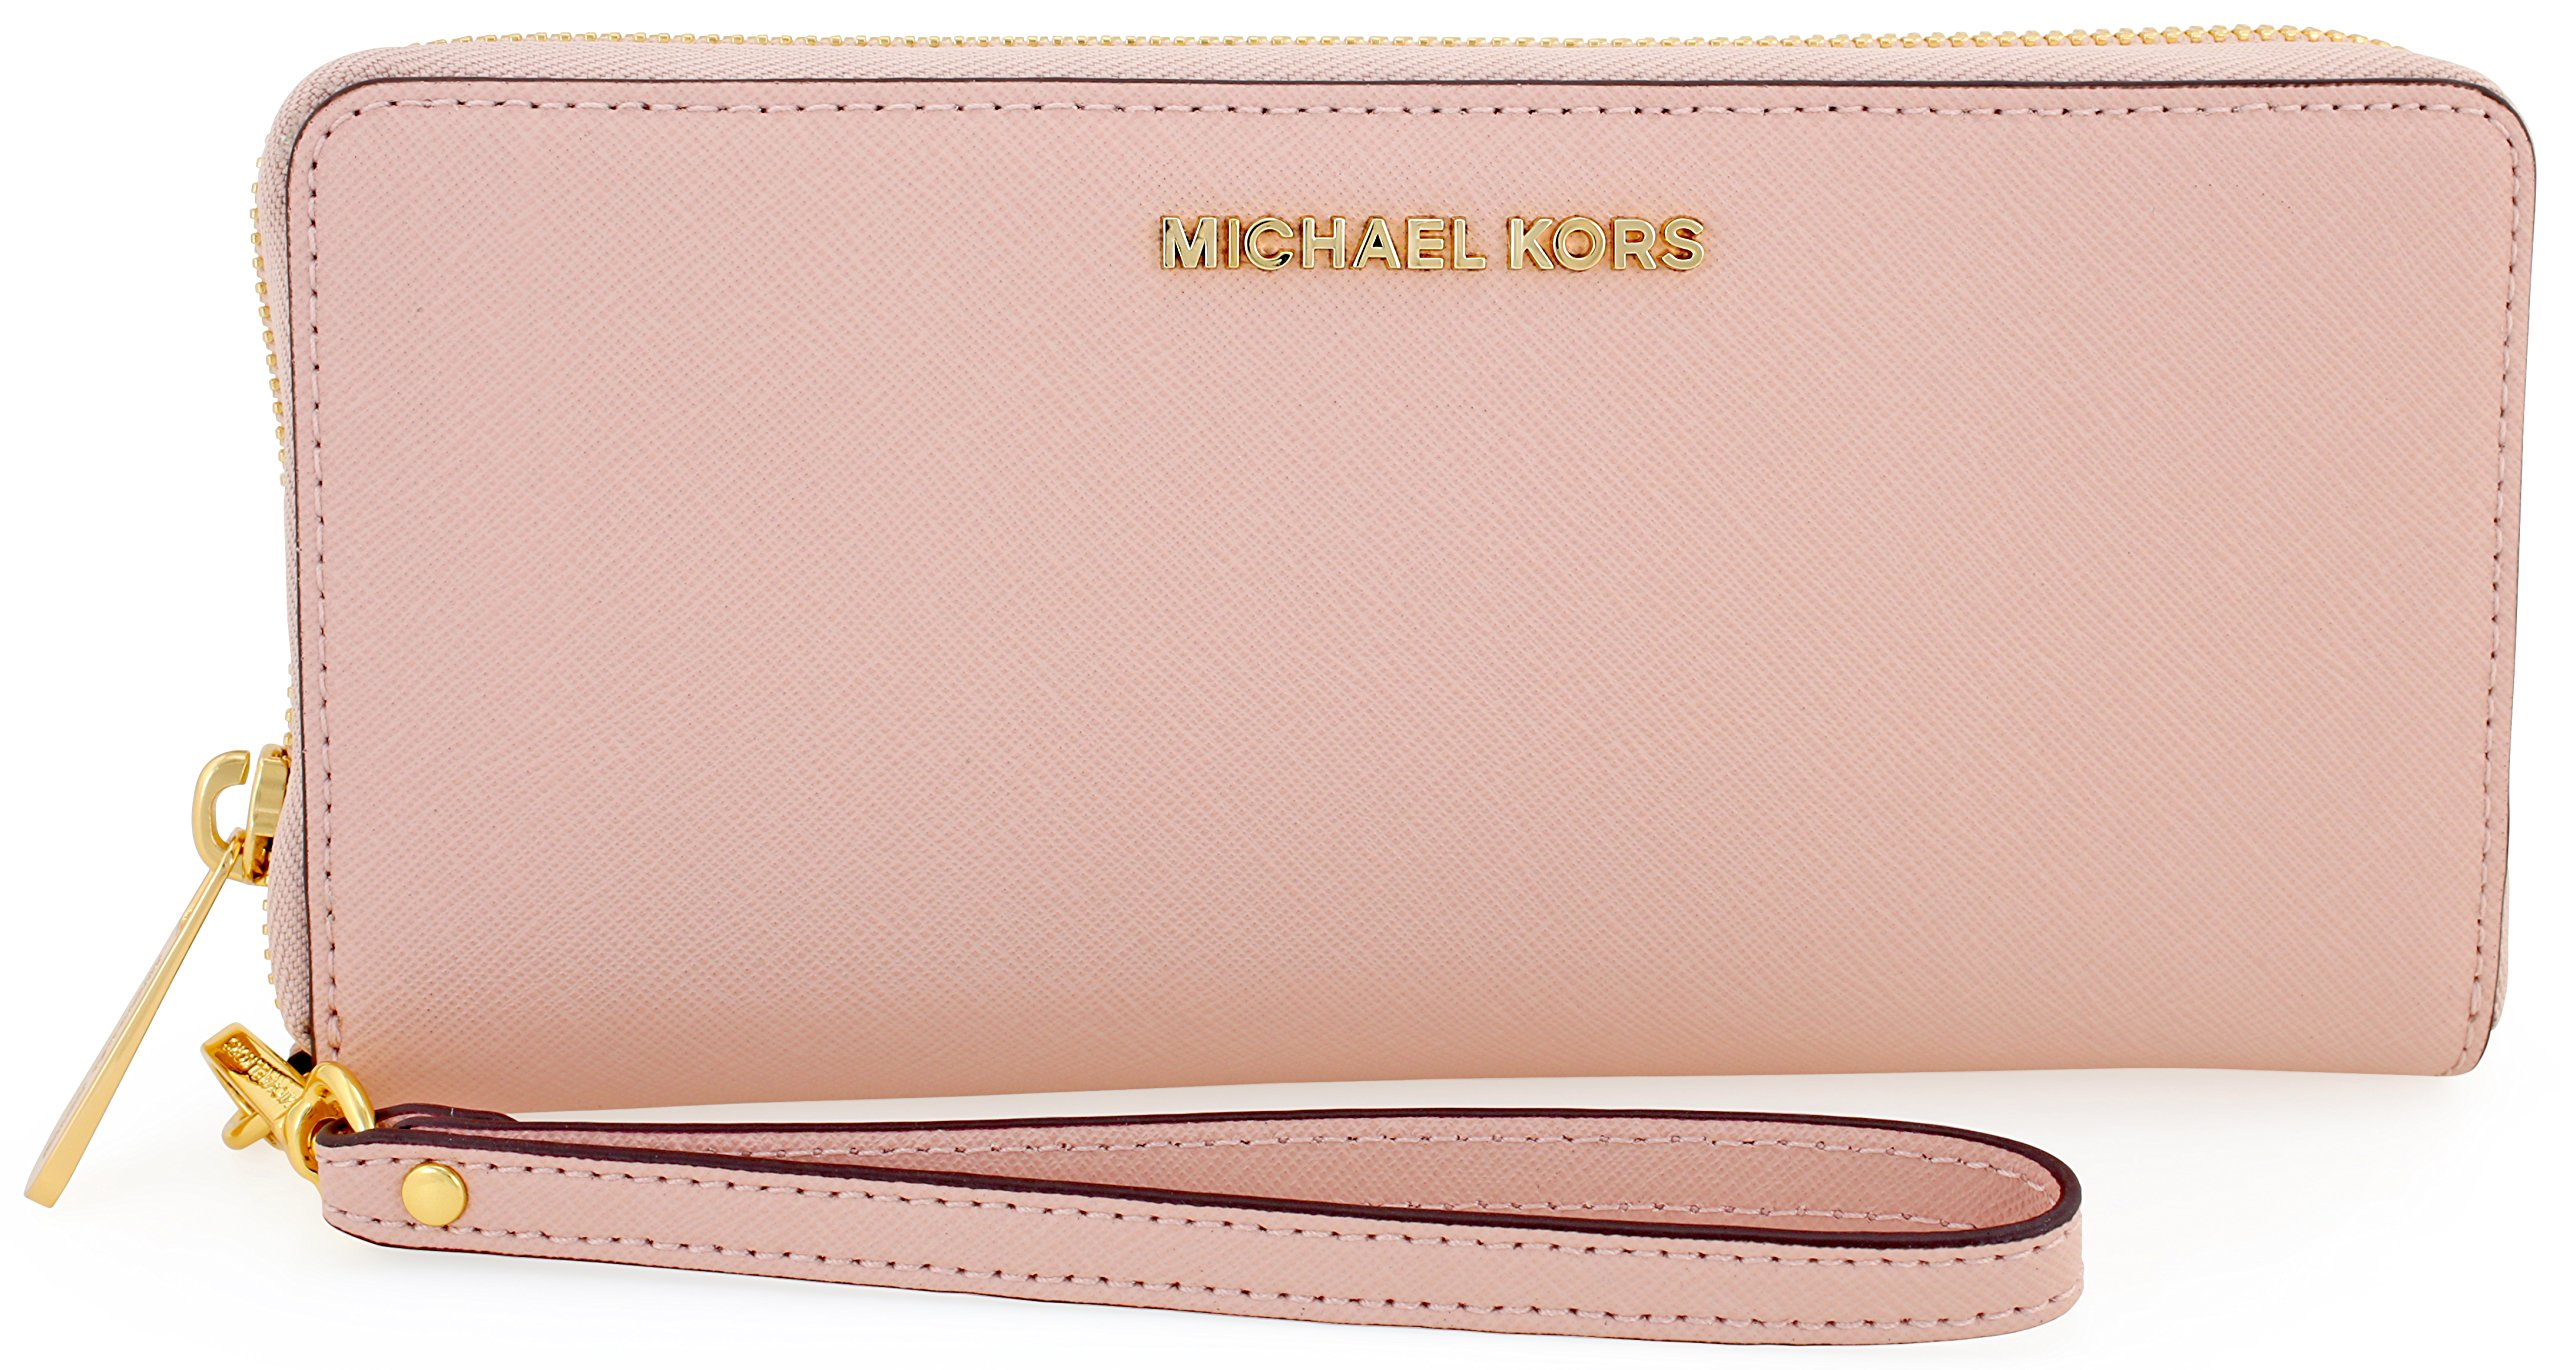 MICHAEL KORS Jet Set Travel Leather Continental Wristlet in Soft Pink by Michael Kors